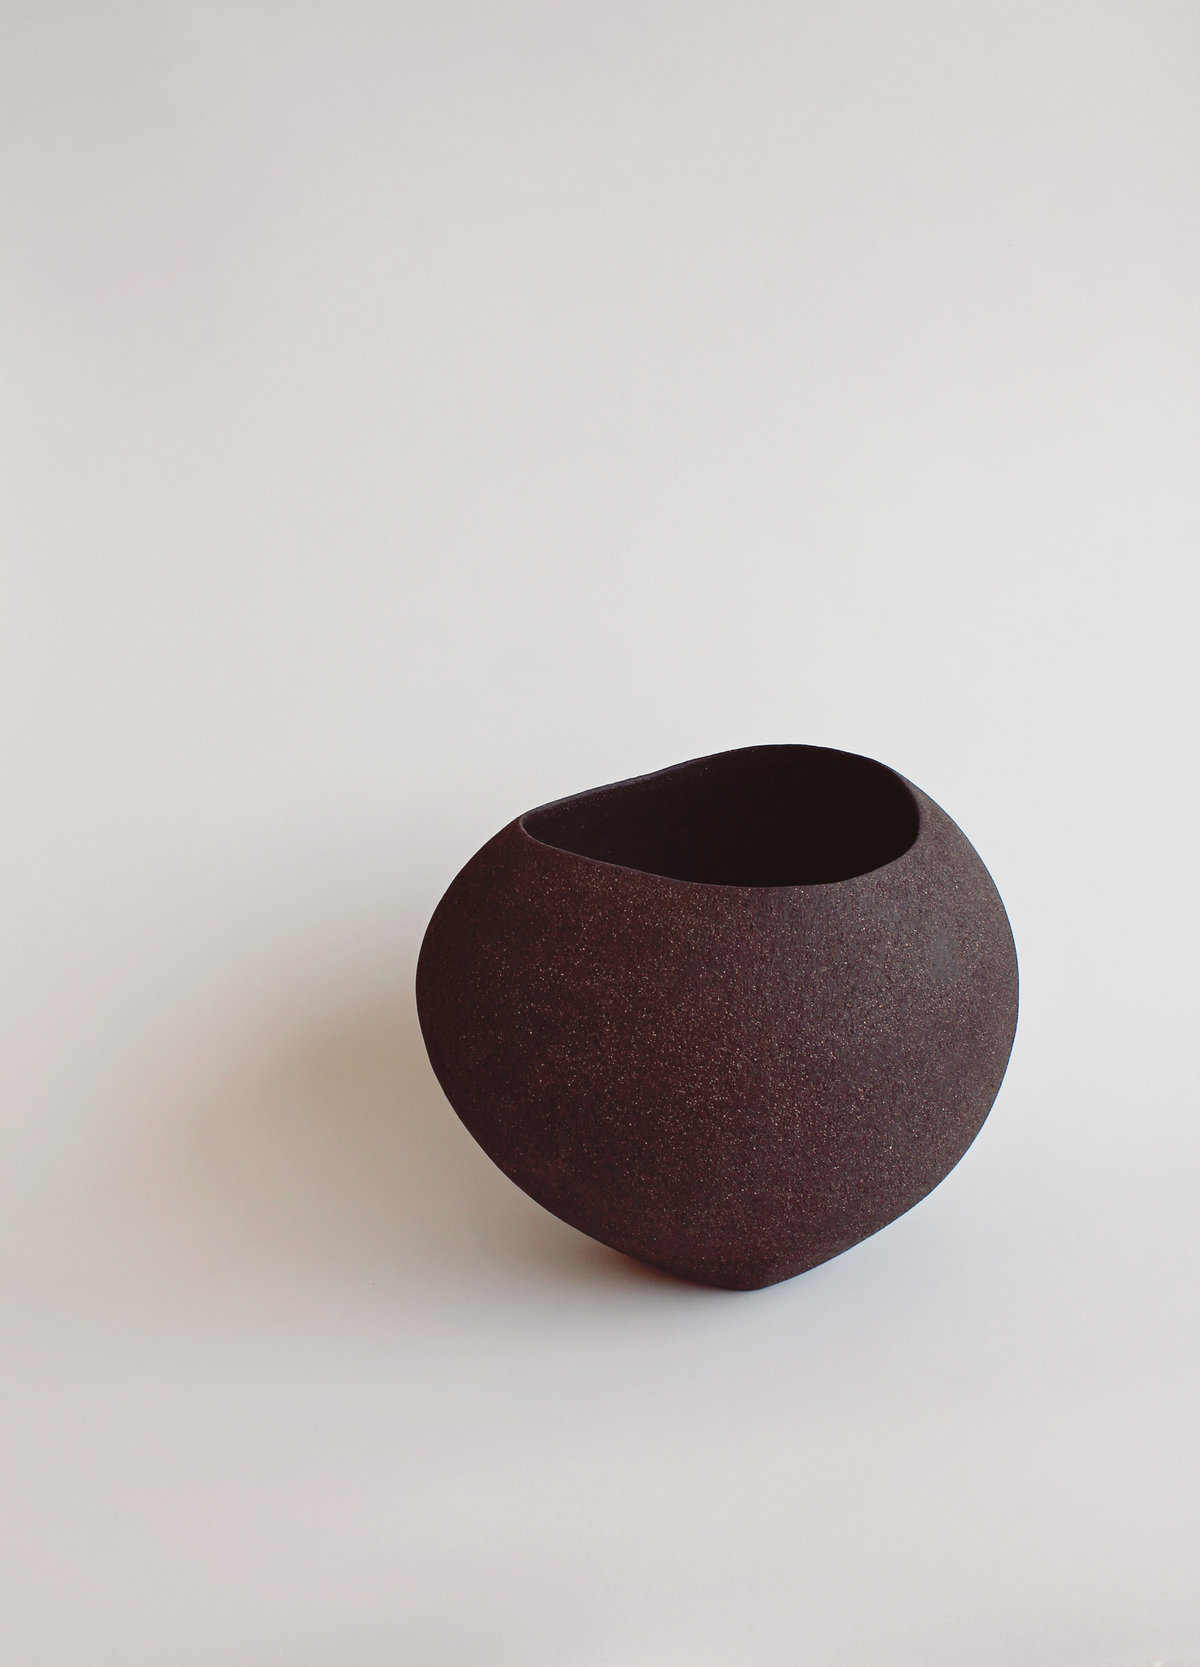 Yasha-Butler-Ceramic-Sculpture-Bowl-Black-Brown-Lithic_1457-3500px